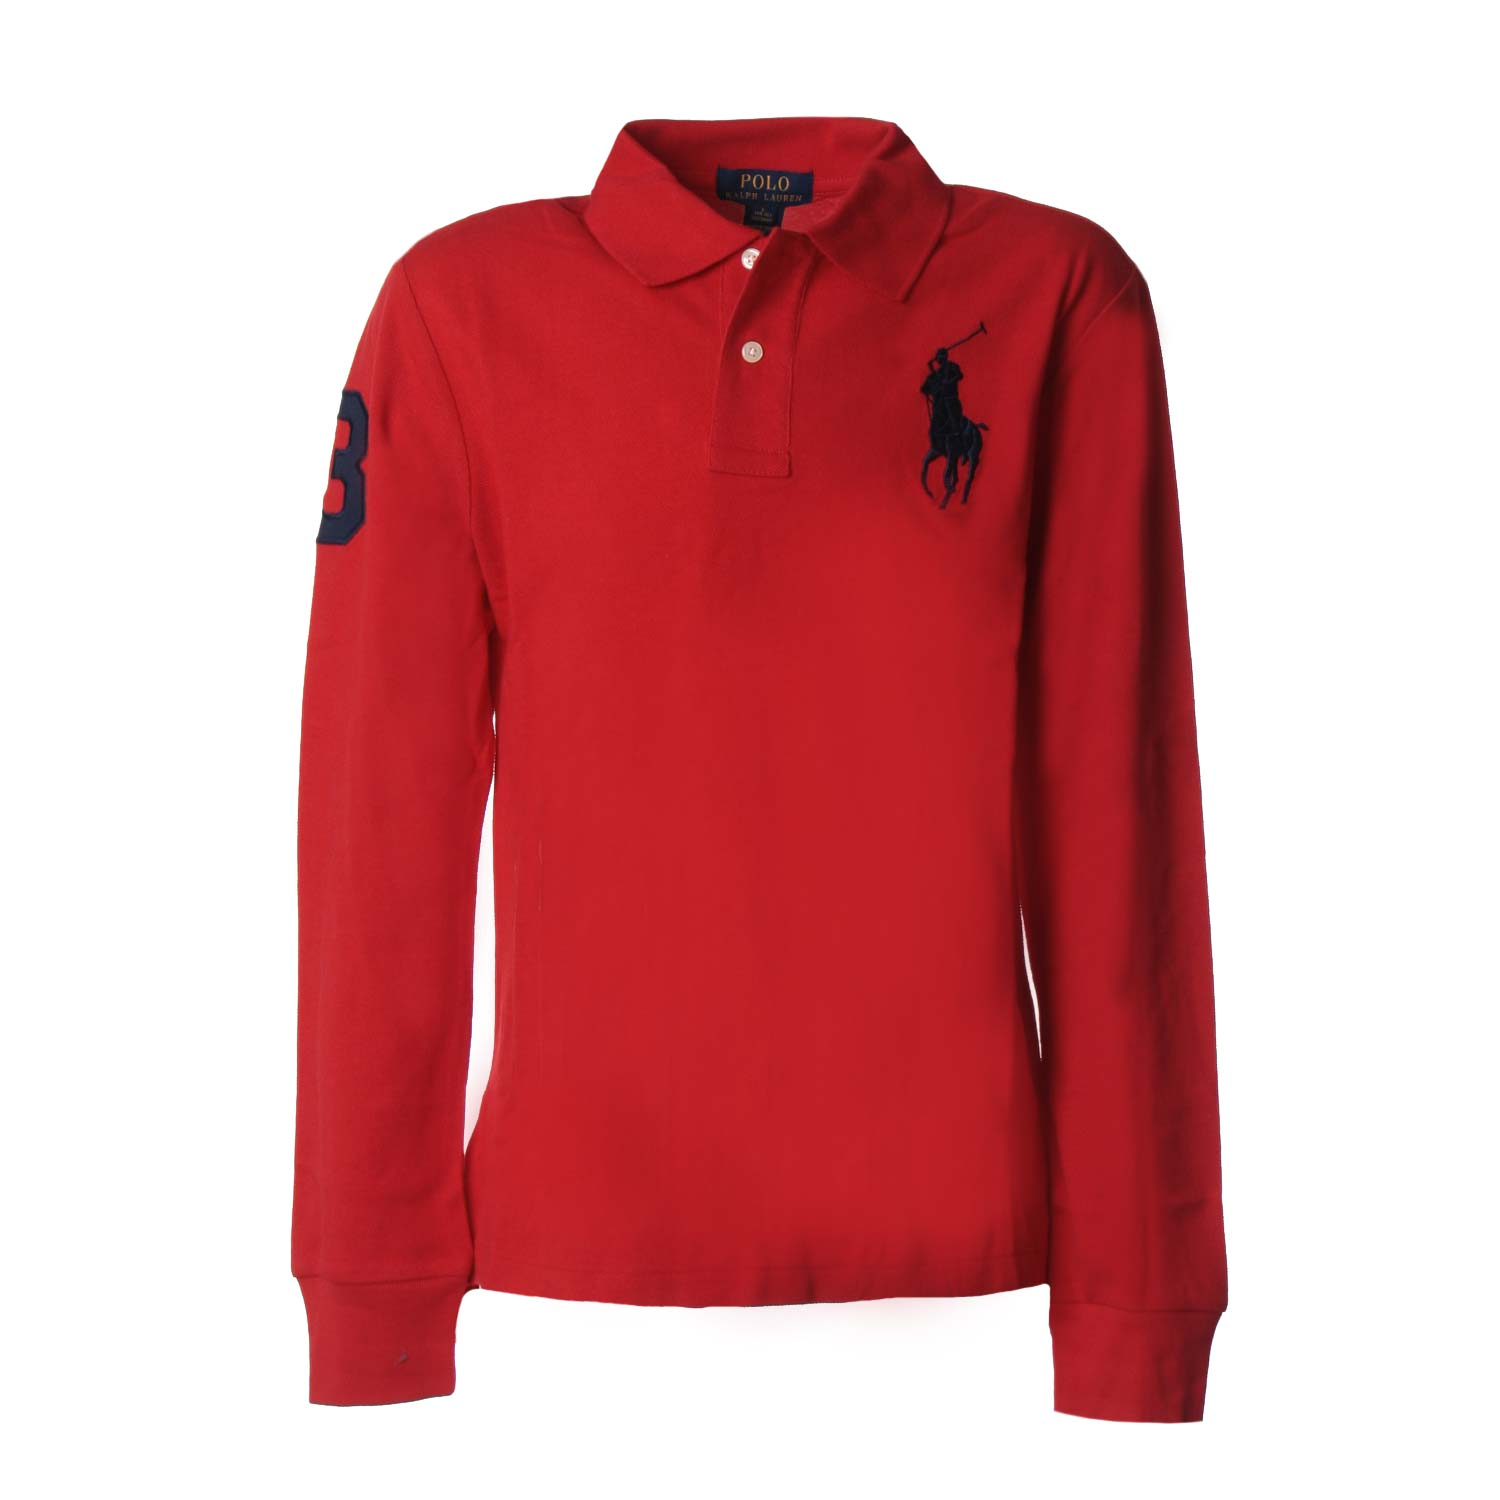 Long Sleevs Polo Slim Fit Toddler Red rCxBode